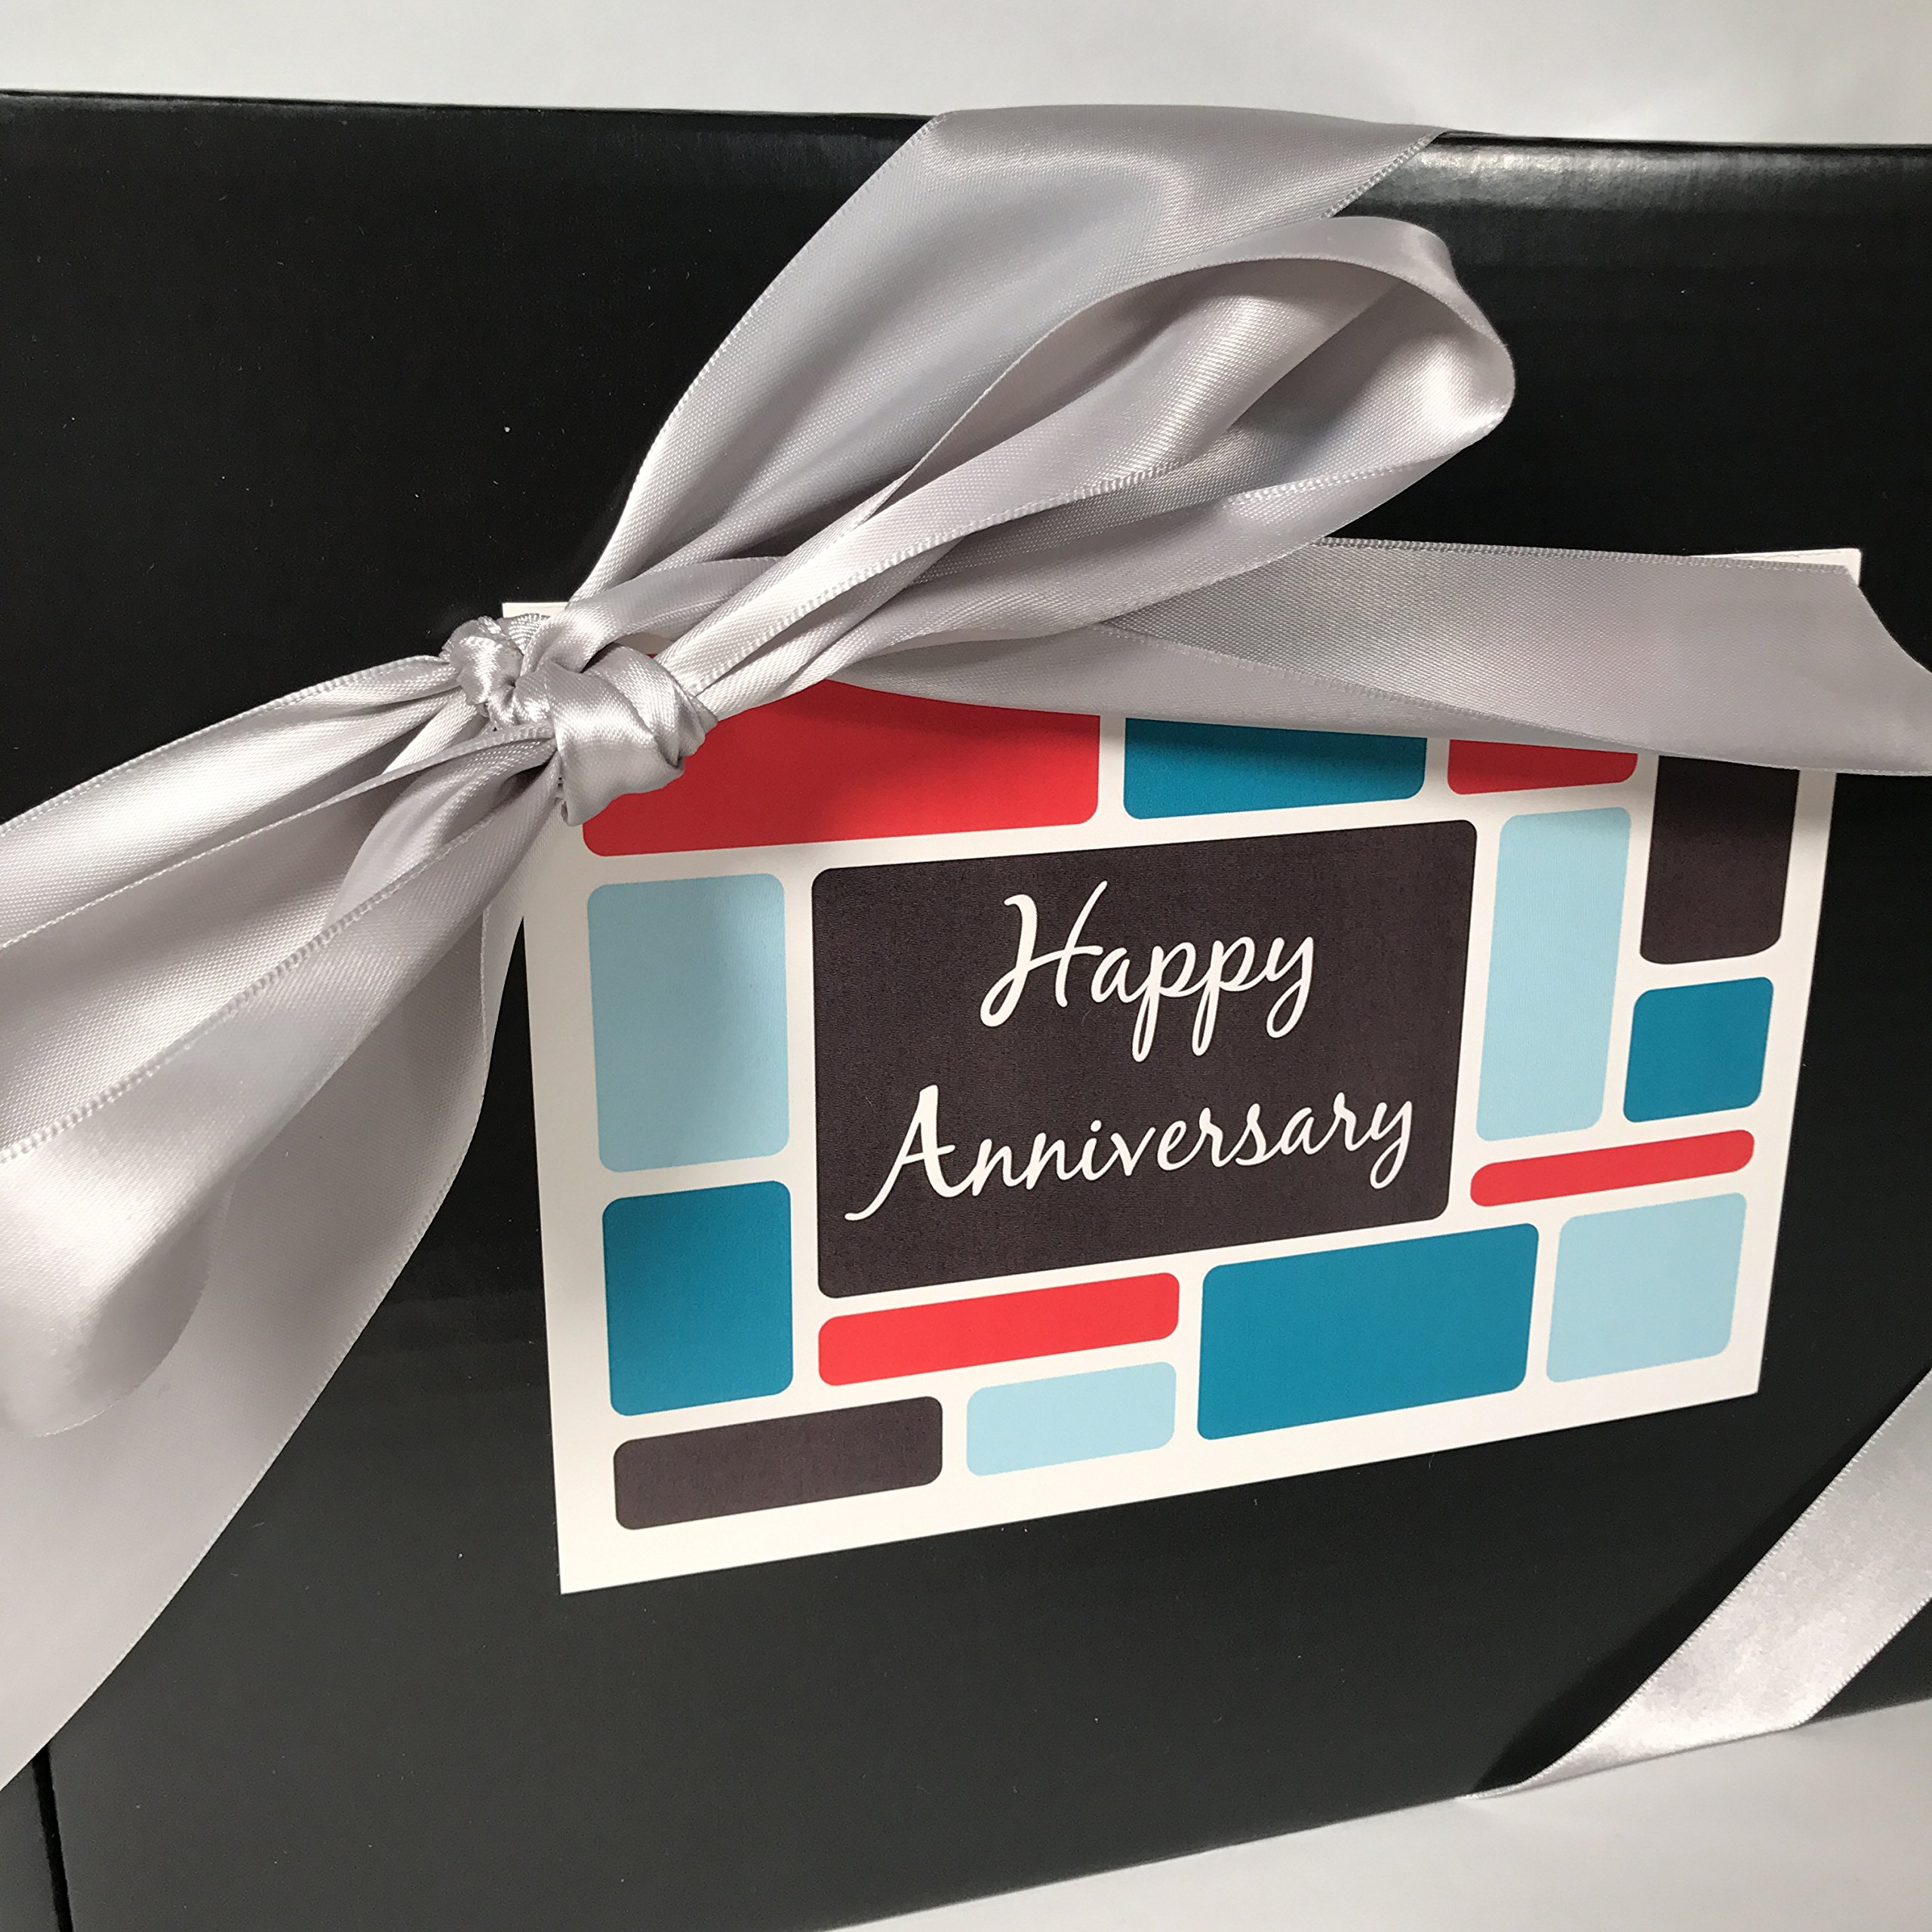 Gourmet Happy Anniversary Gift Basket Box Prime - Almost 4 Pounds - Remember a Special Couple with this Special Box - Great for 25th 25 and 50th 50 Marriage Anniversaries and also Work Anniversaries! by Specialty Gift Boxes (Image #2)